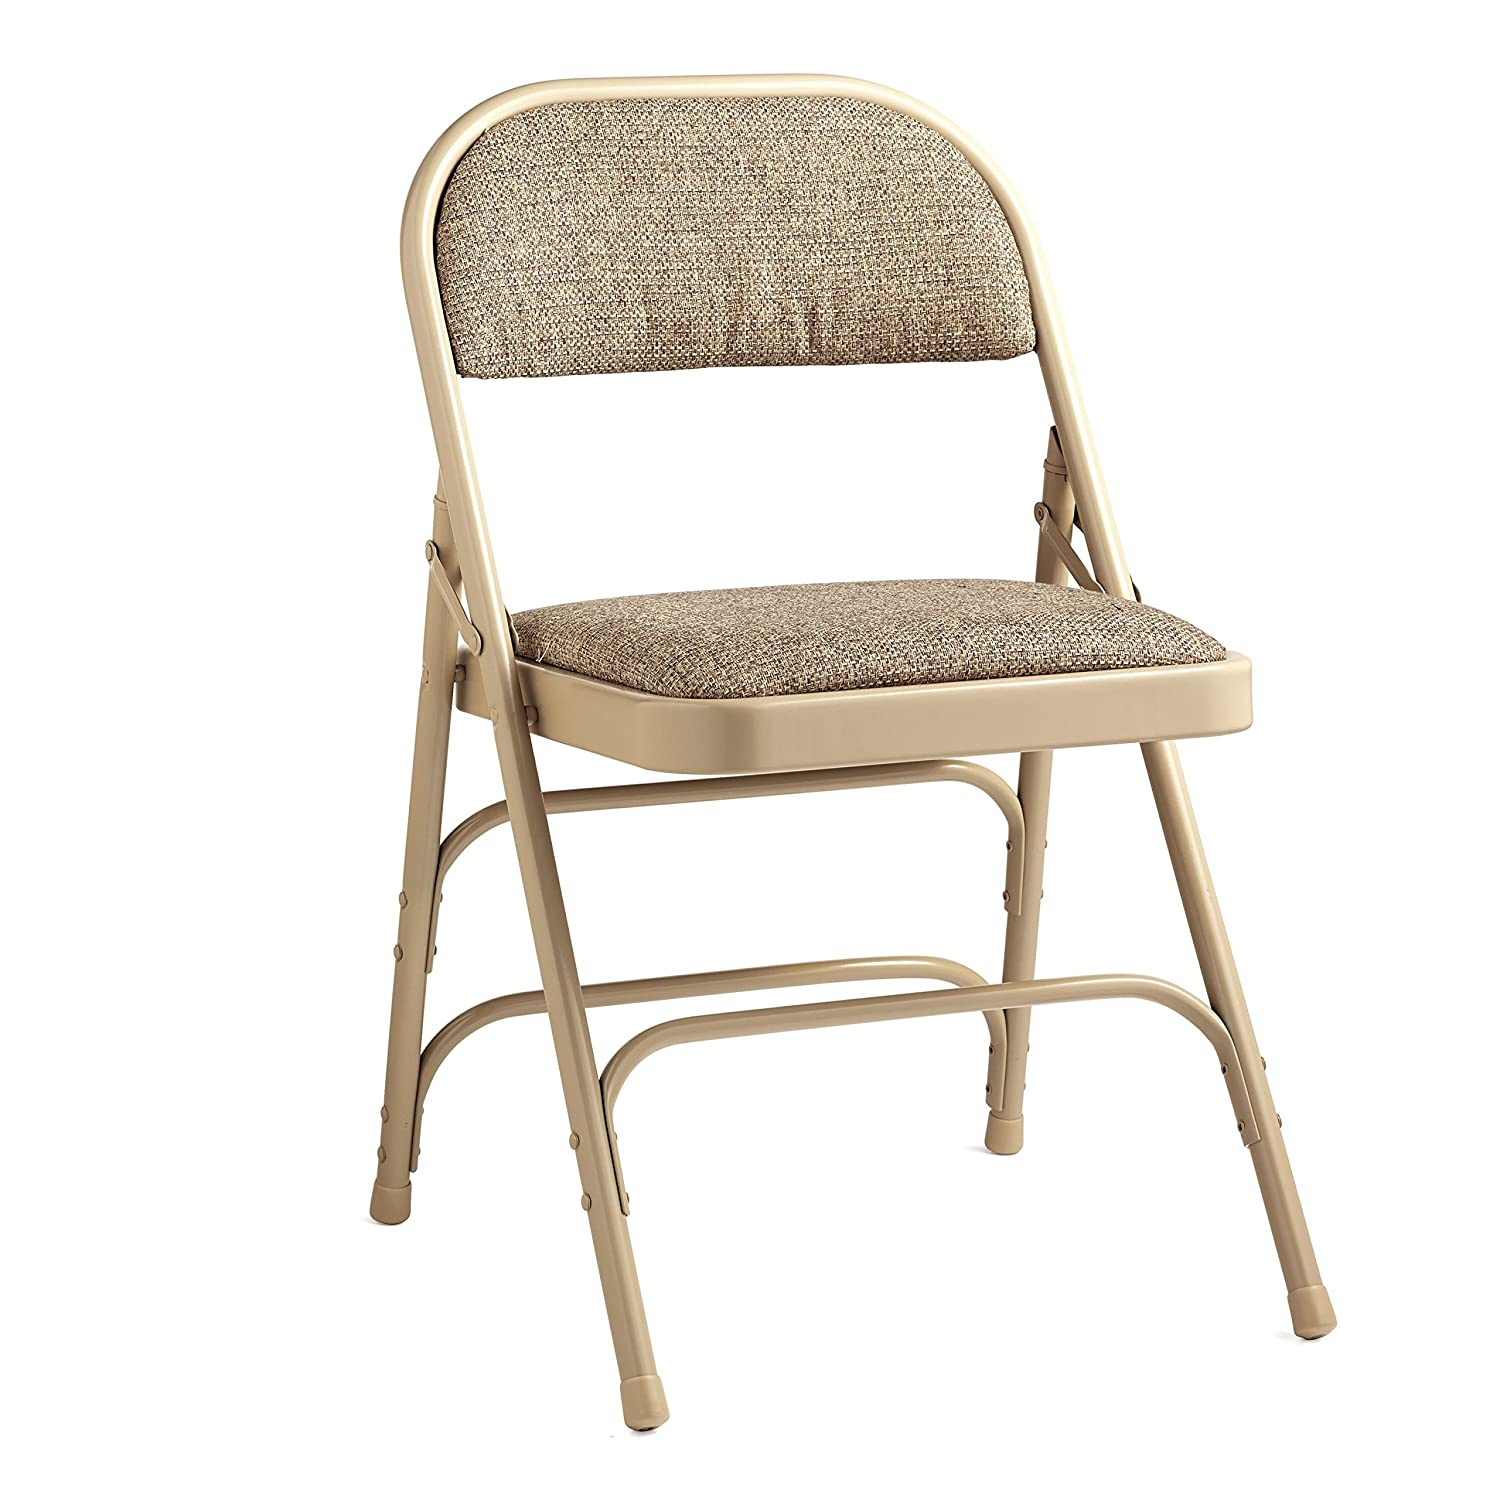 Fresh Metal Folding Chairs Elegant Chair Ideas